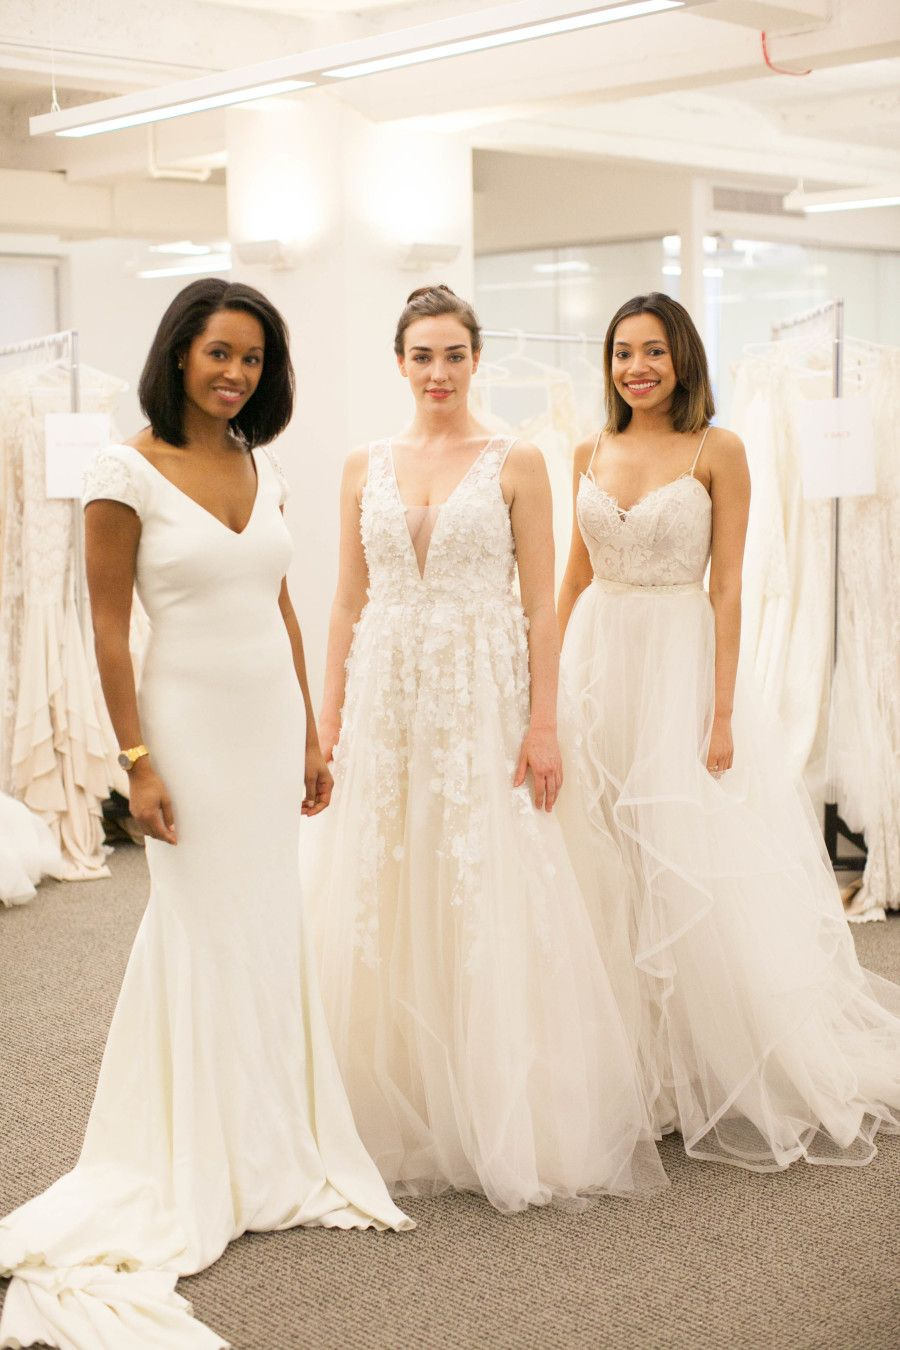 Big pretty wedding dresses  Itus Up to You to Decide What This Bride Wears on Her Wedding Day